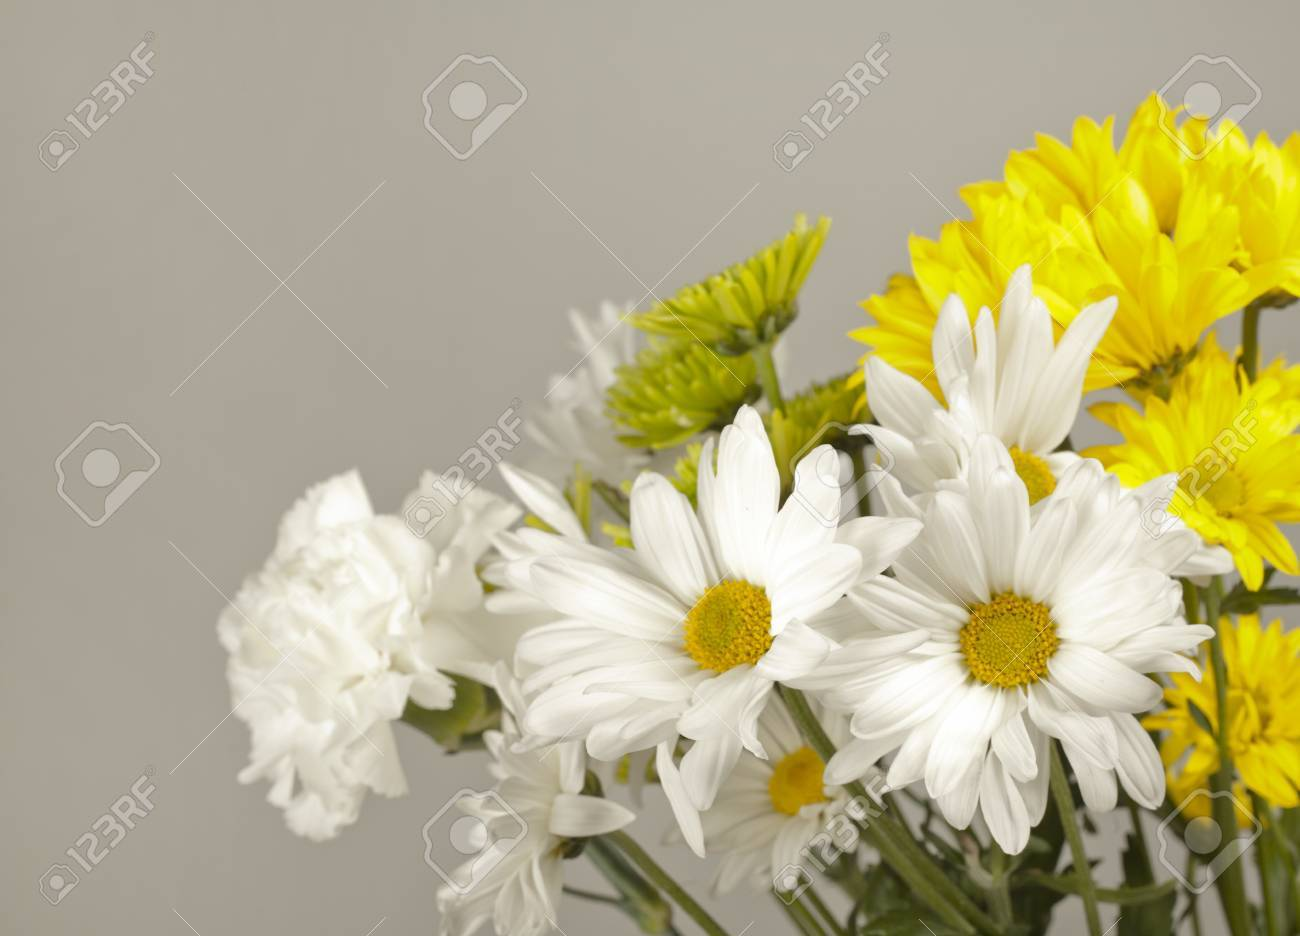 Bouquet Of White And Yellow Flowers On Light Grey Background Stock